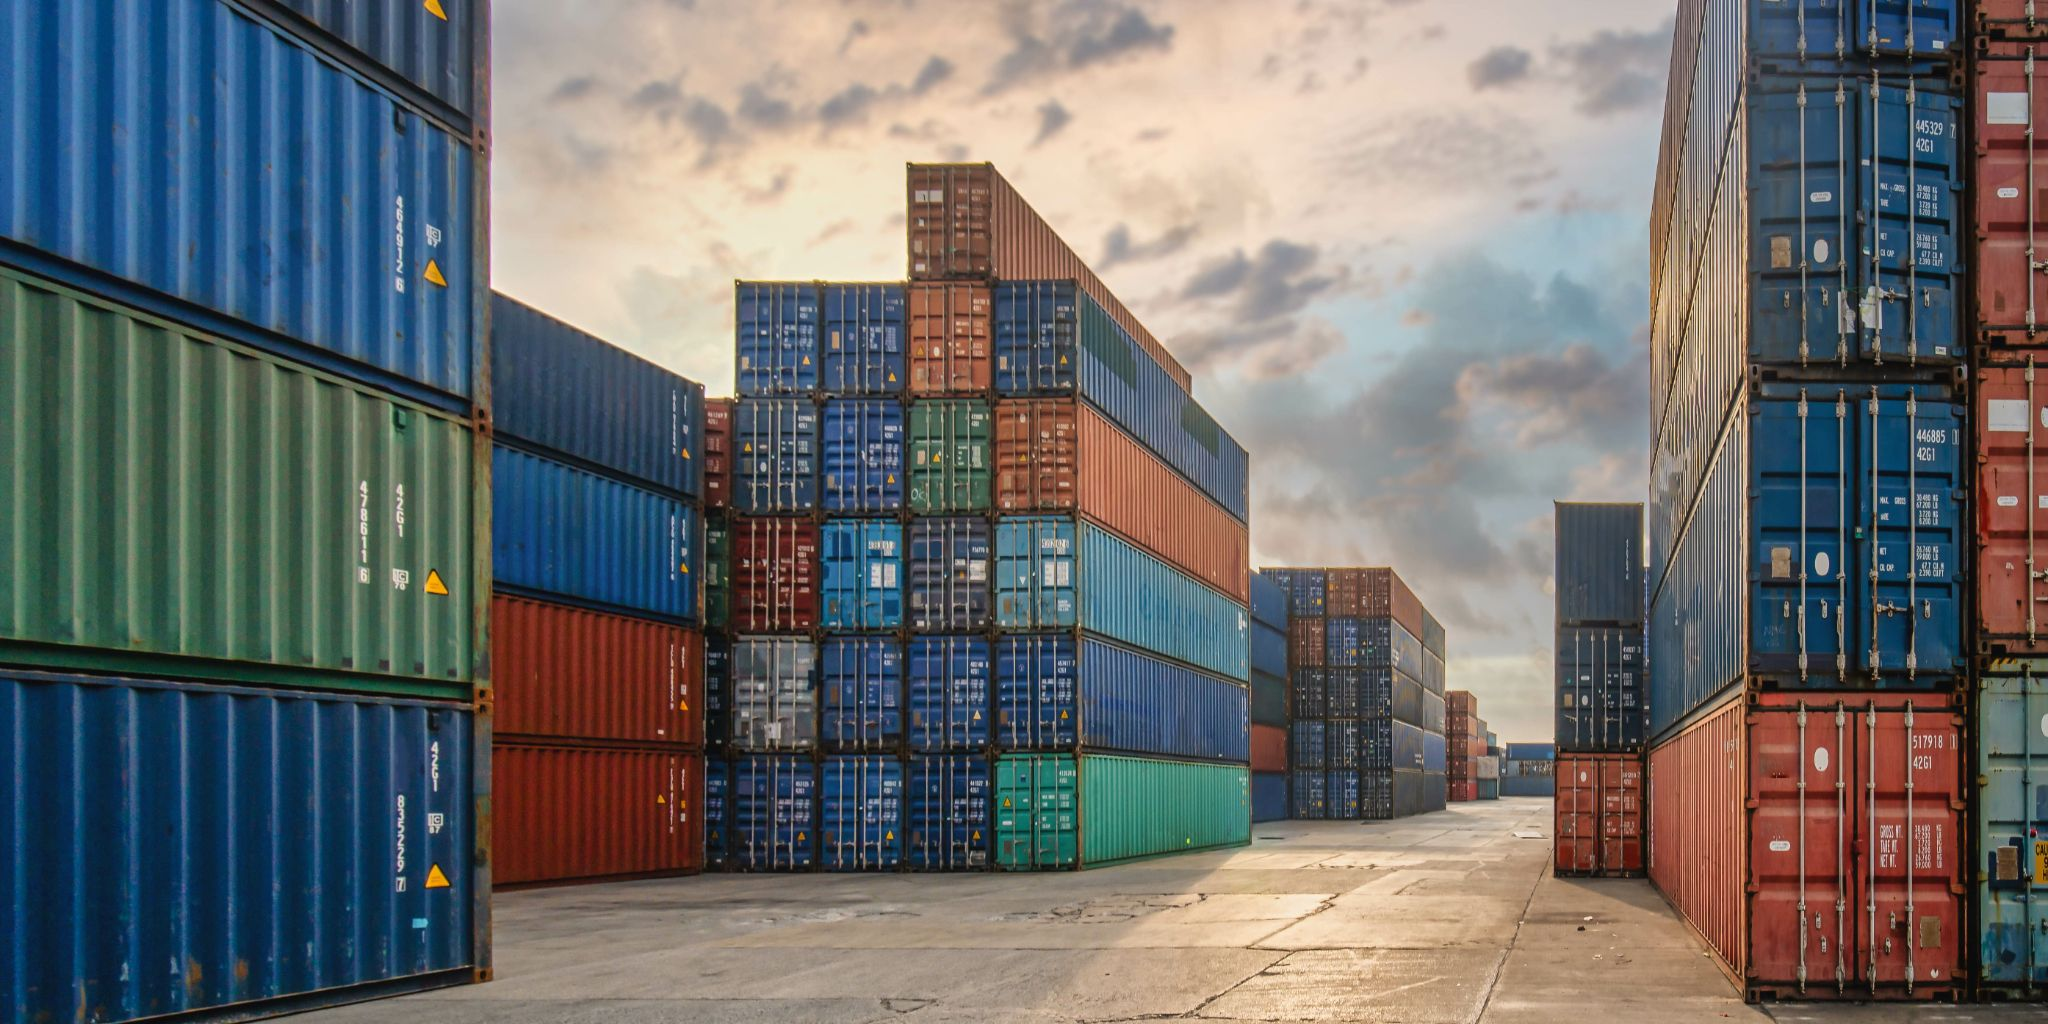 Where have all the shipping containers gone?